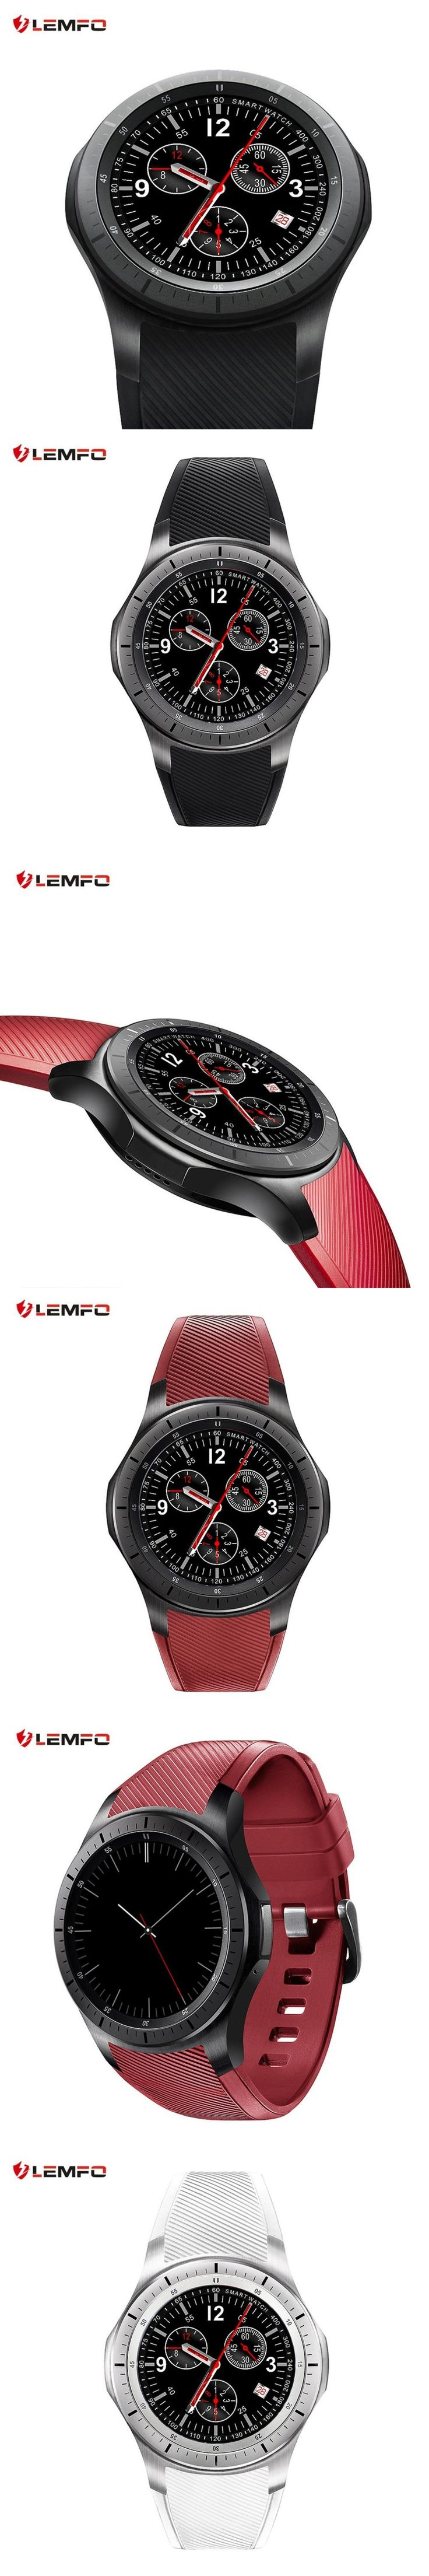 Original LEMFO LF16 Android 5.1 Smart Watch 1.39 inch OLED Screen MTK6580 512MB+8GB Bluetooth Watch Heart Rate Reloj Inteligente